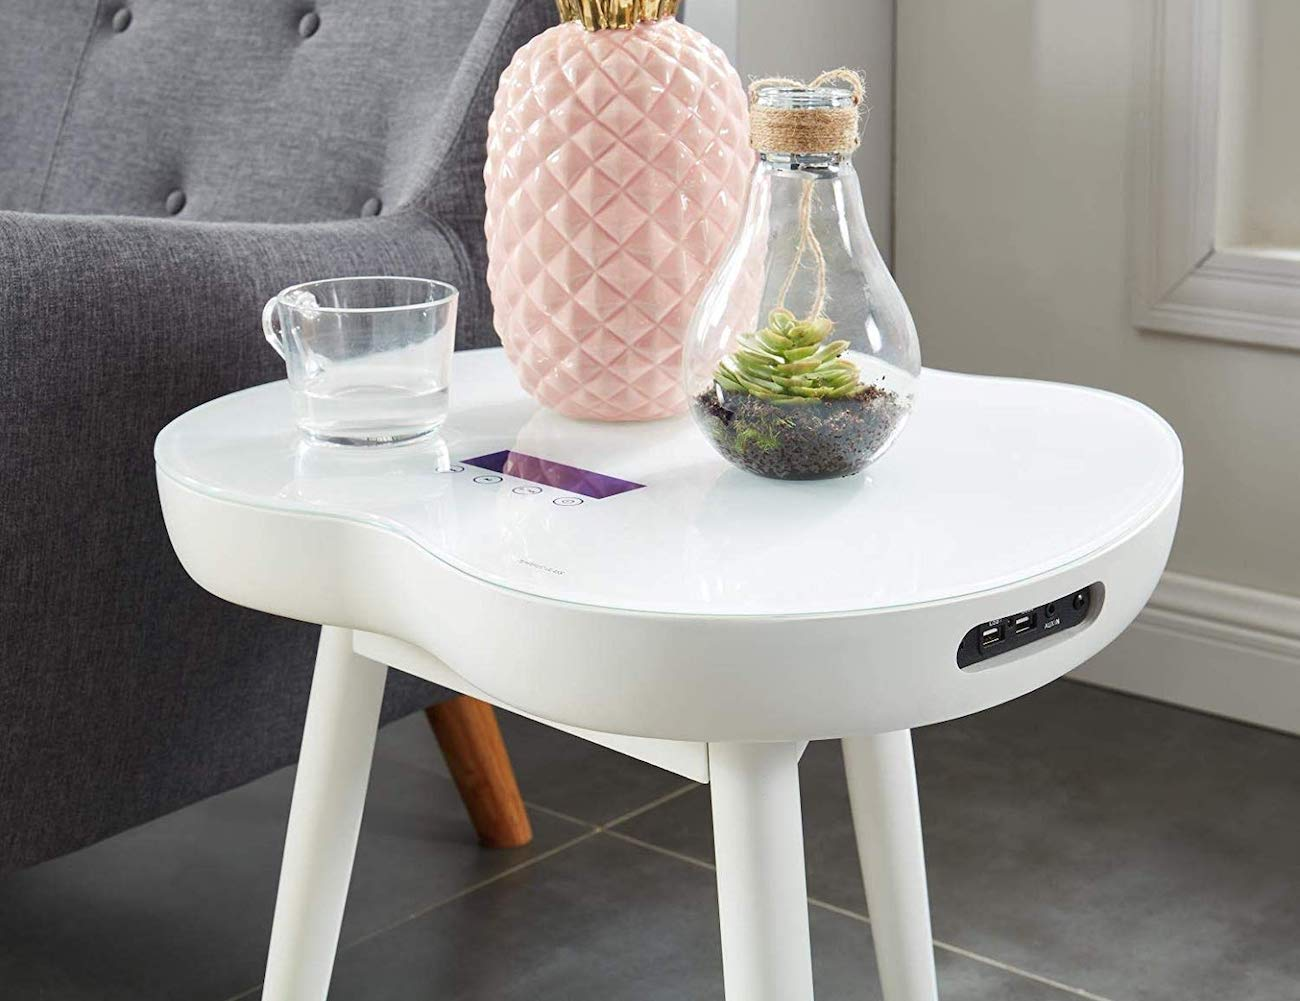 2020 Modern Wireless Charging Smart Table does more than hold your drink